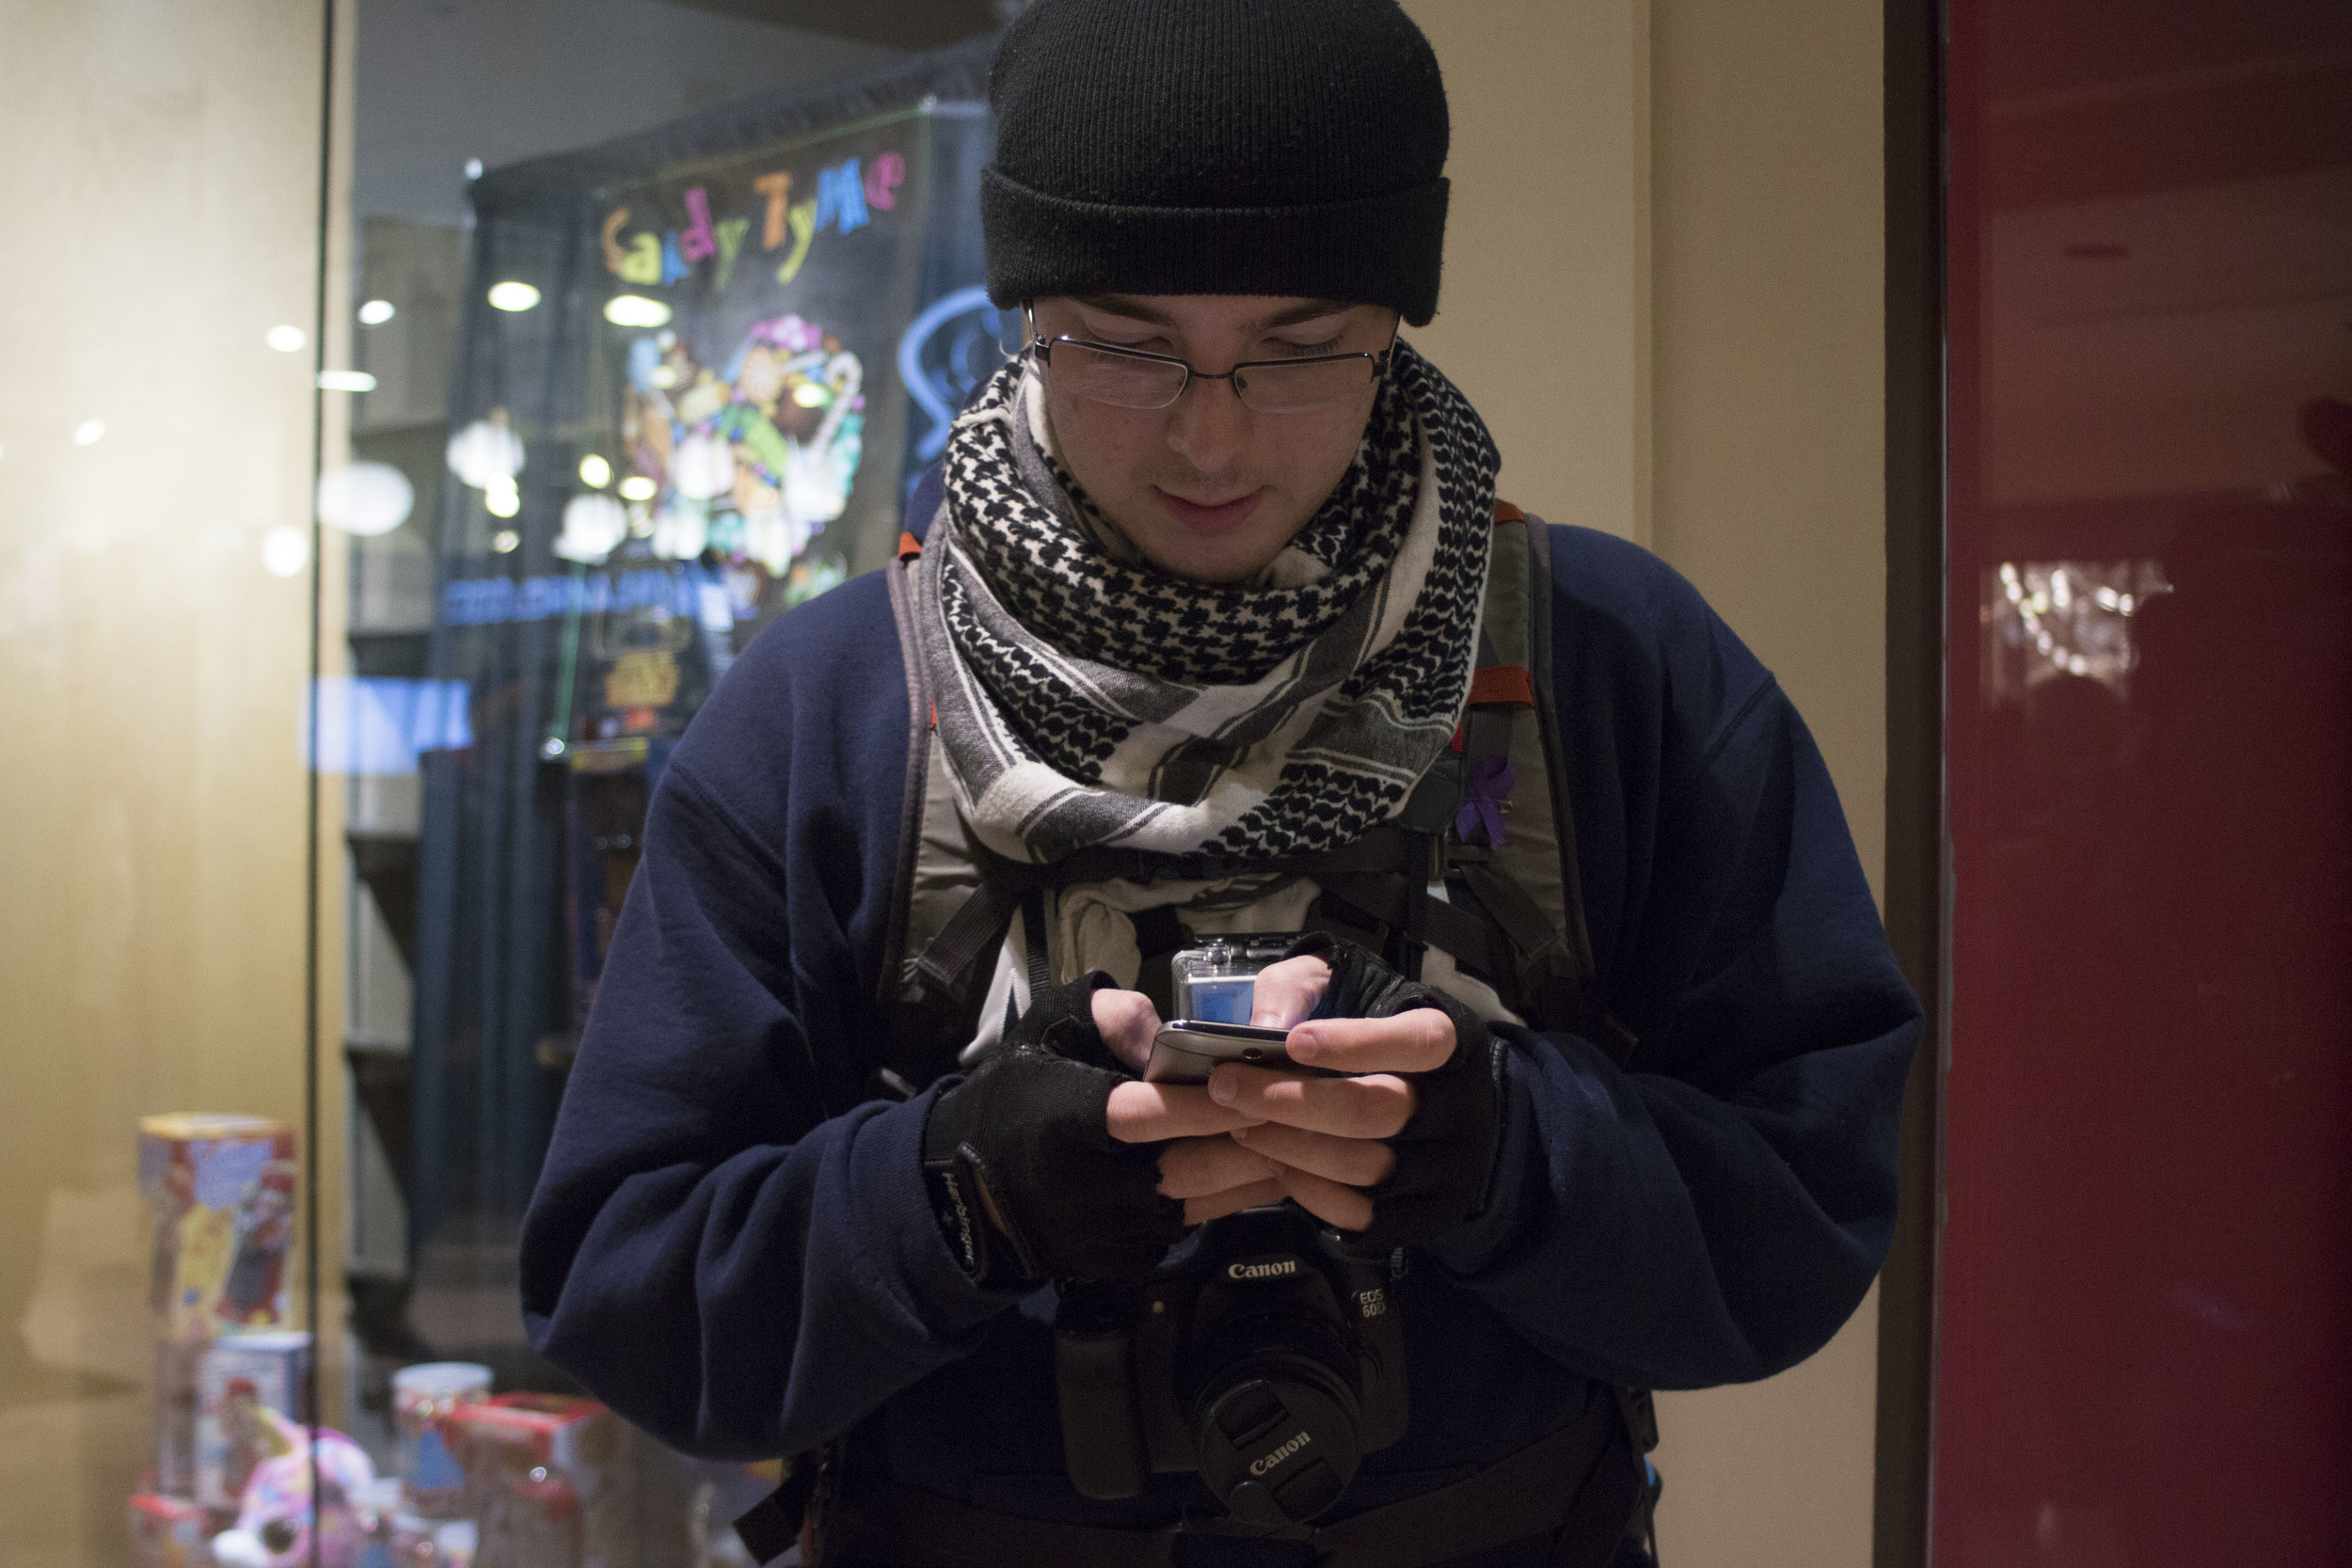 Nelson takes a break from photographing the Black Friday Black Lives Matter protest to tweet about the day's events inside of Westlake Center.